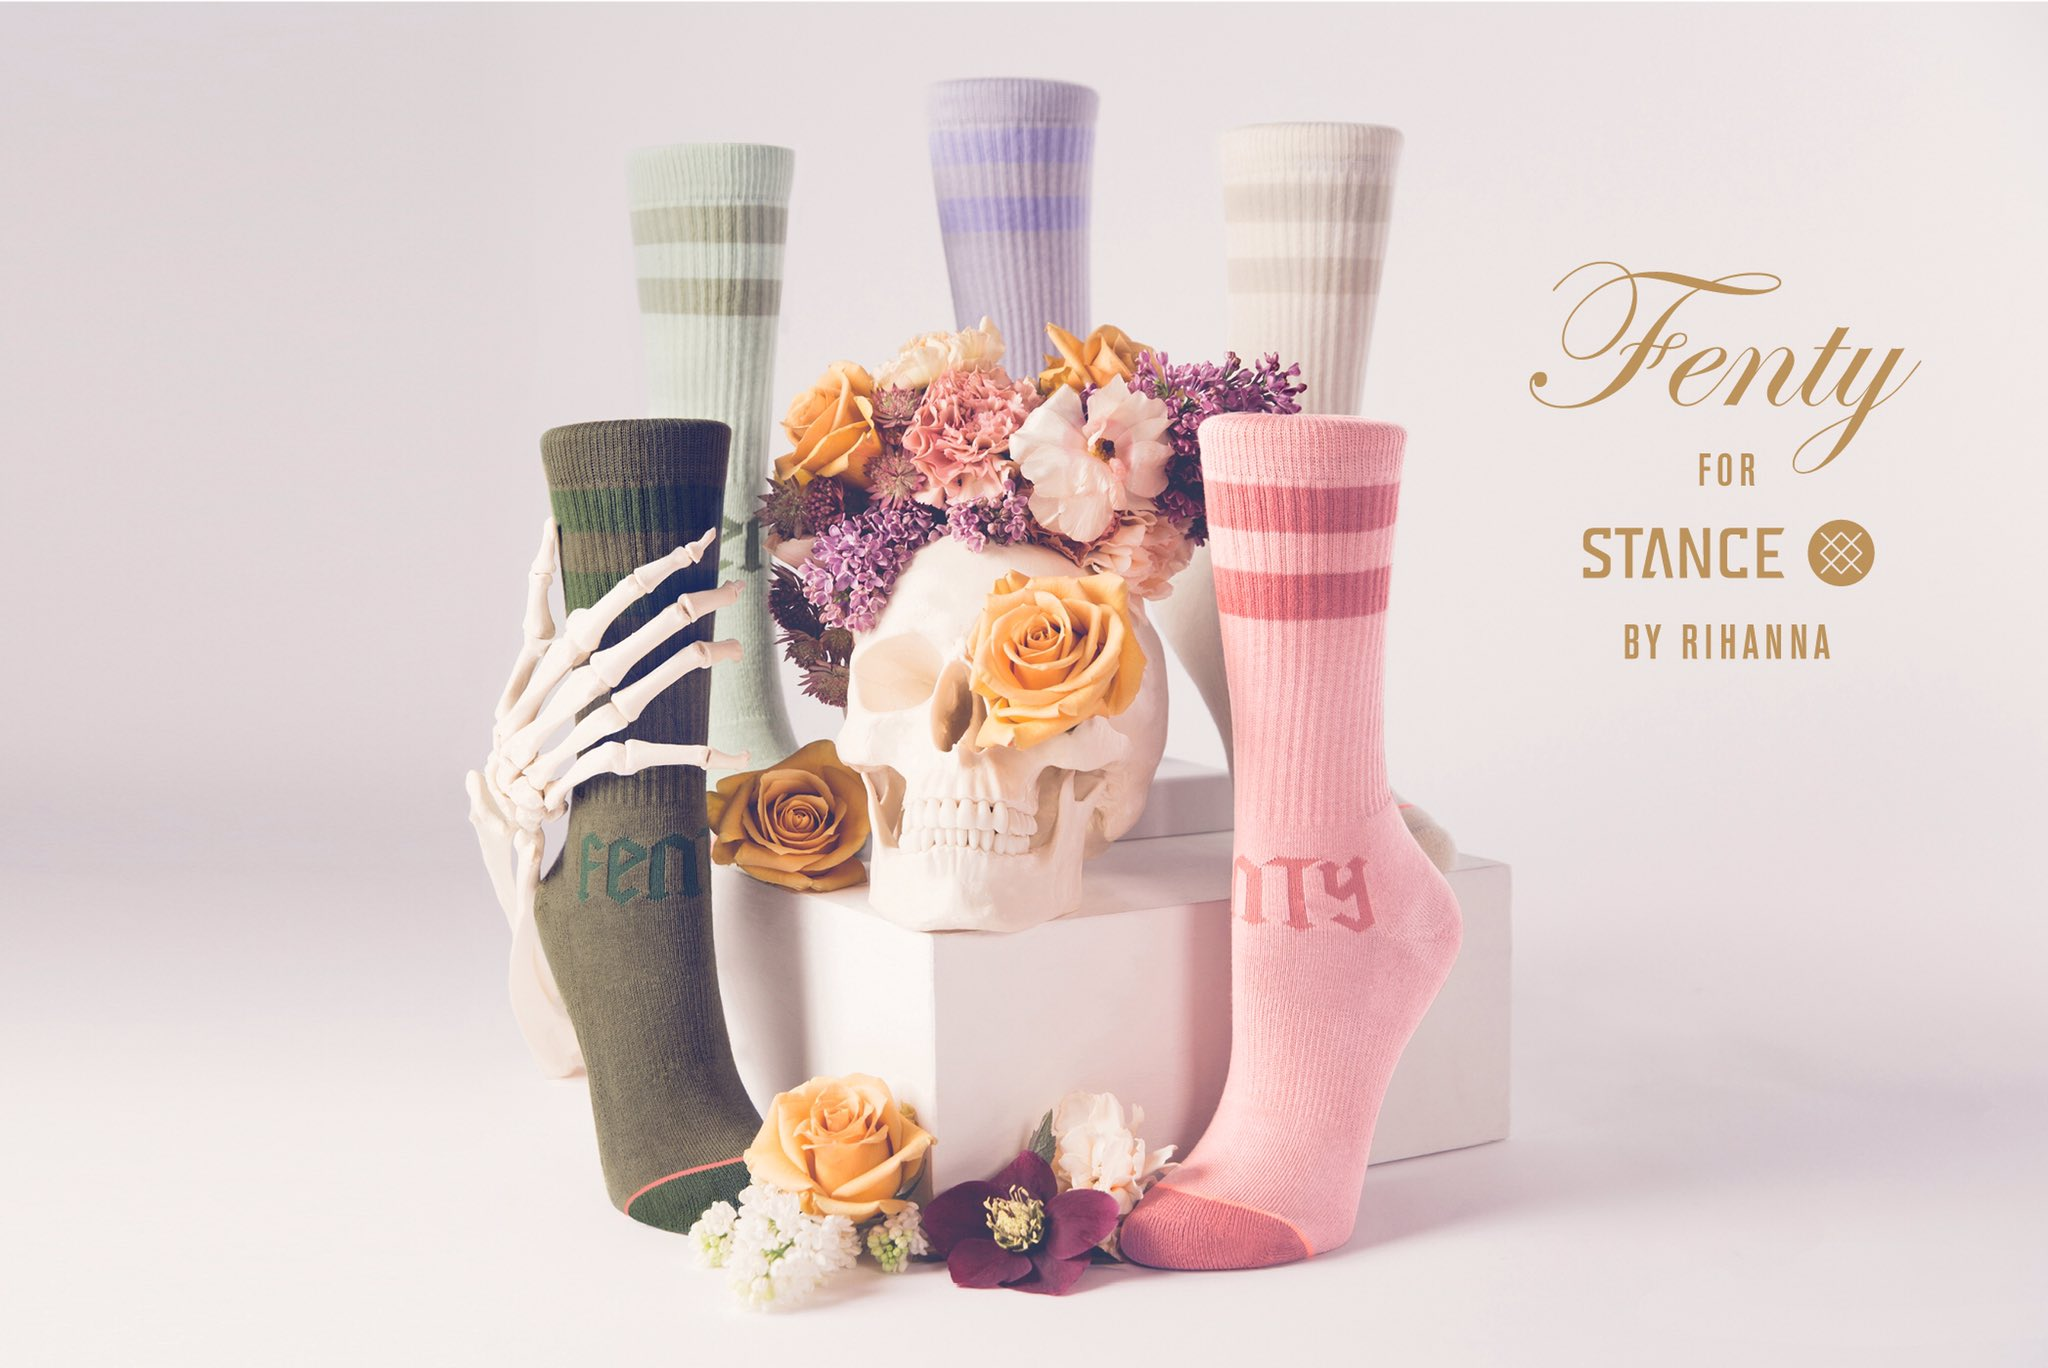 Spring collection is here!!! Get this season's must-have socks now athttps://t.co/NwE9jlLQHI #RihannaXStance https://t.co/VbJBfpTP5u